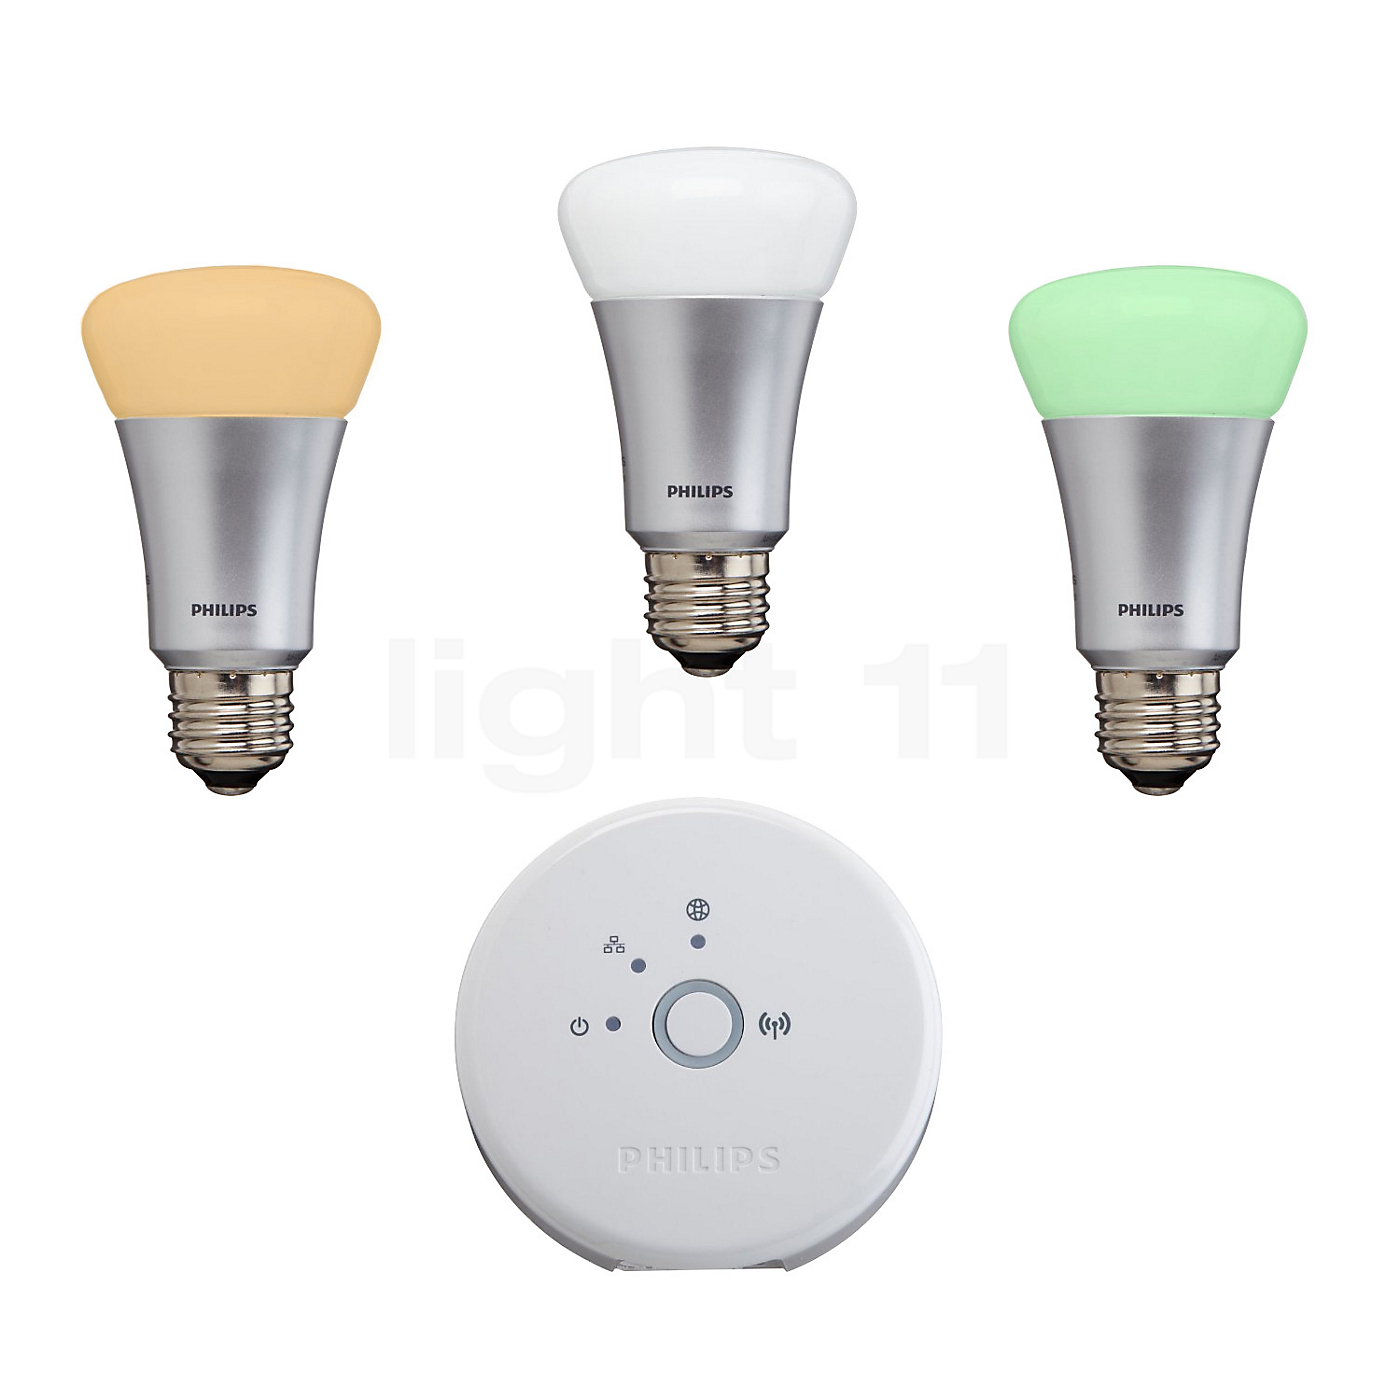 Philips hue hue e27 9w starter kit set of 3 with bridge - Philips hue starter kit ...